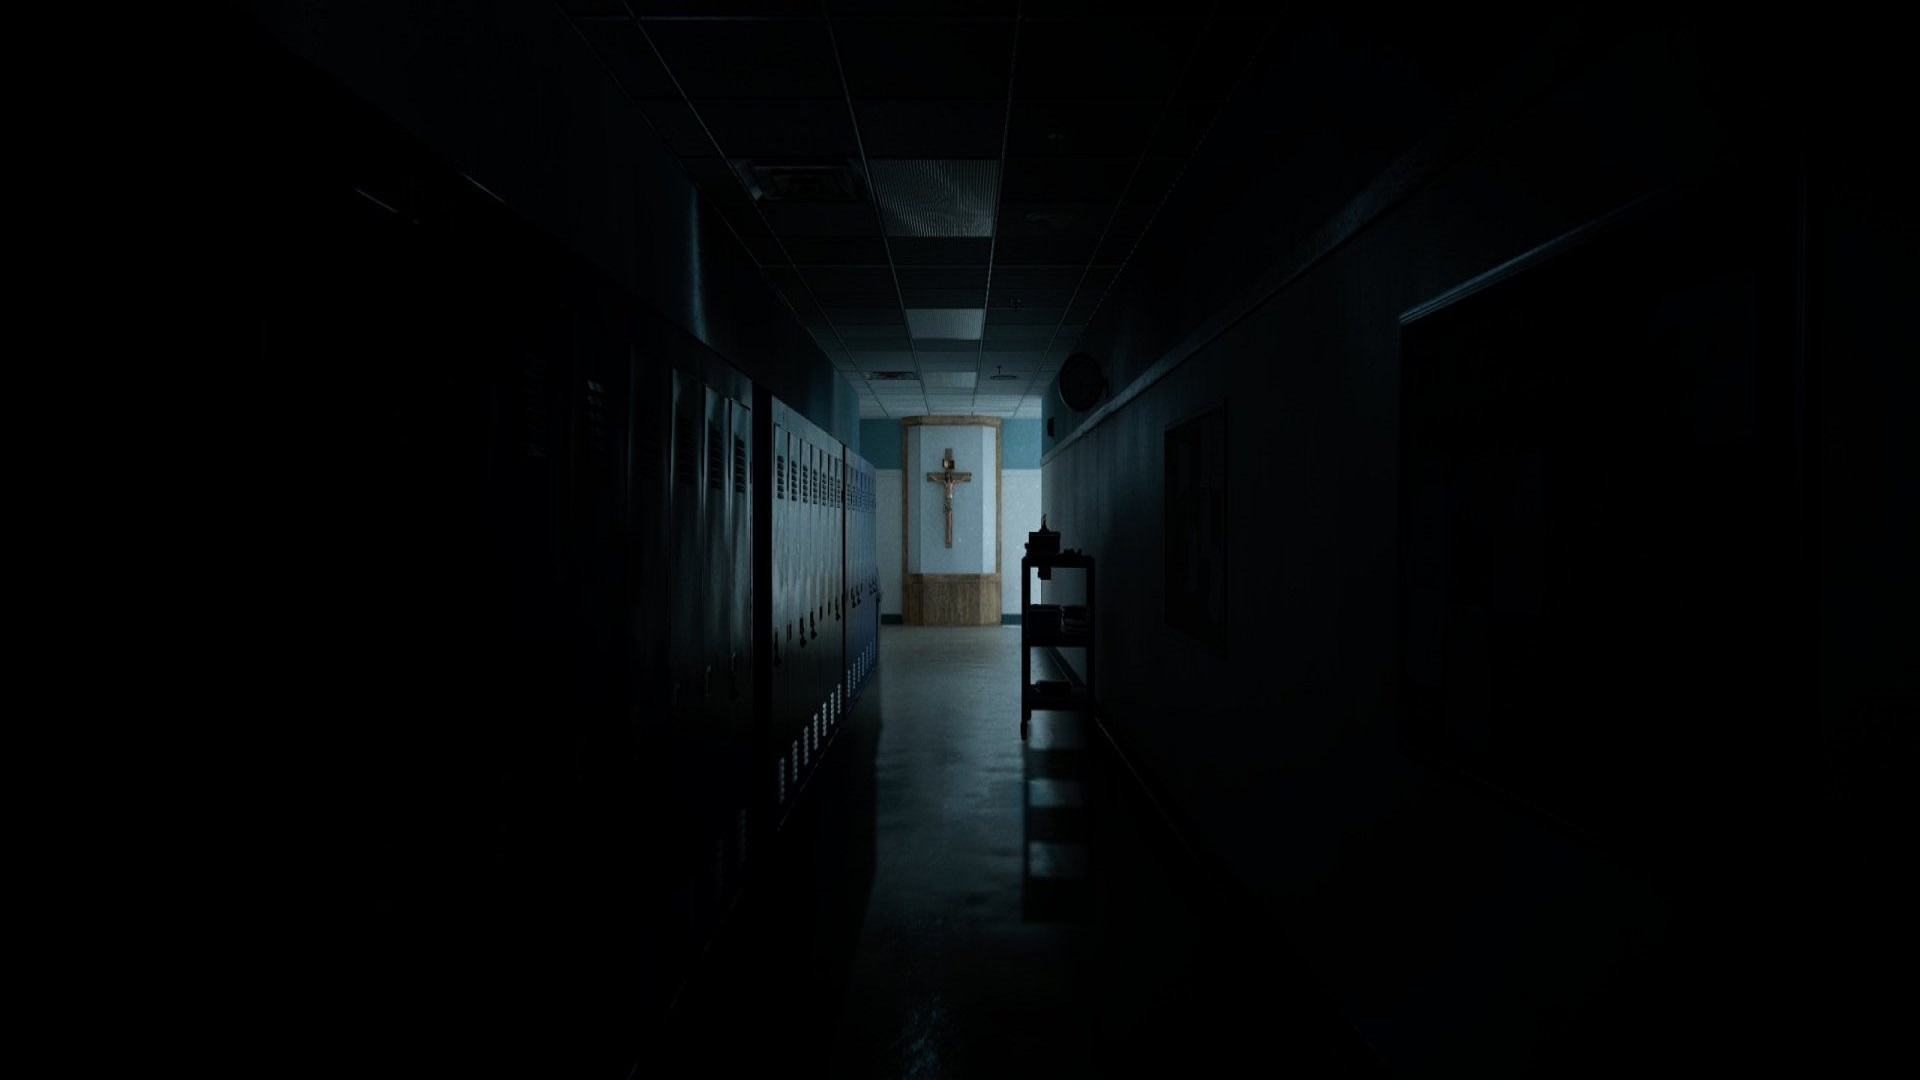 17 Outlast 2 Wallpapers  Wallpaper Abyss  HD Wallpapers